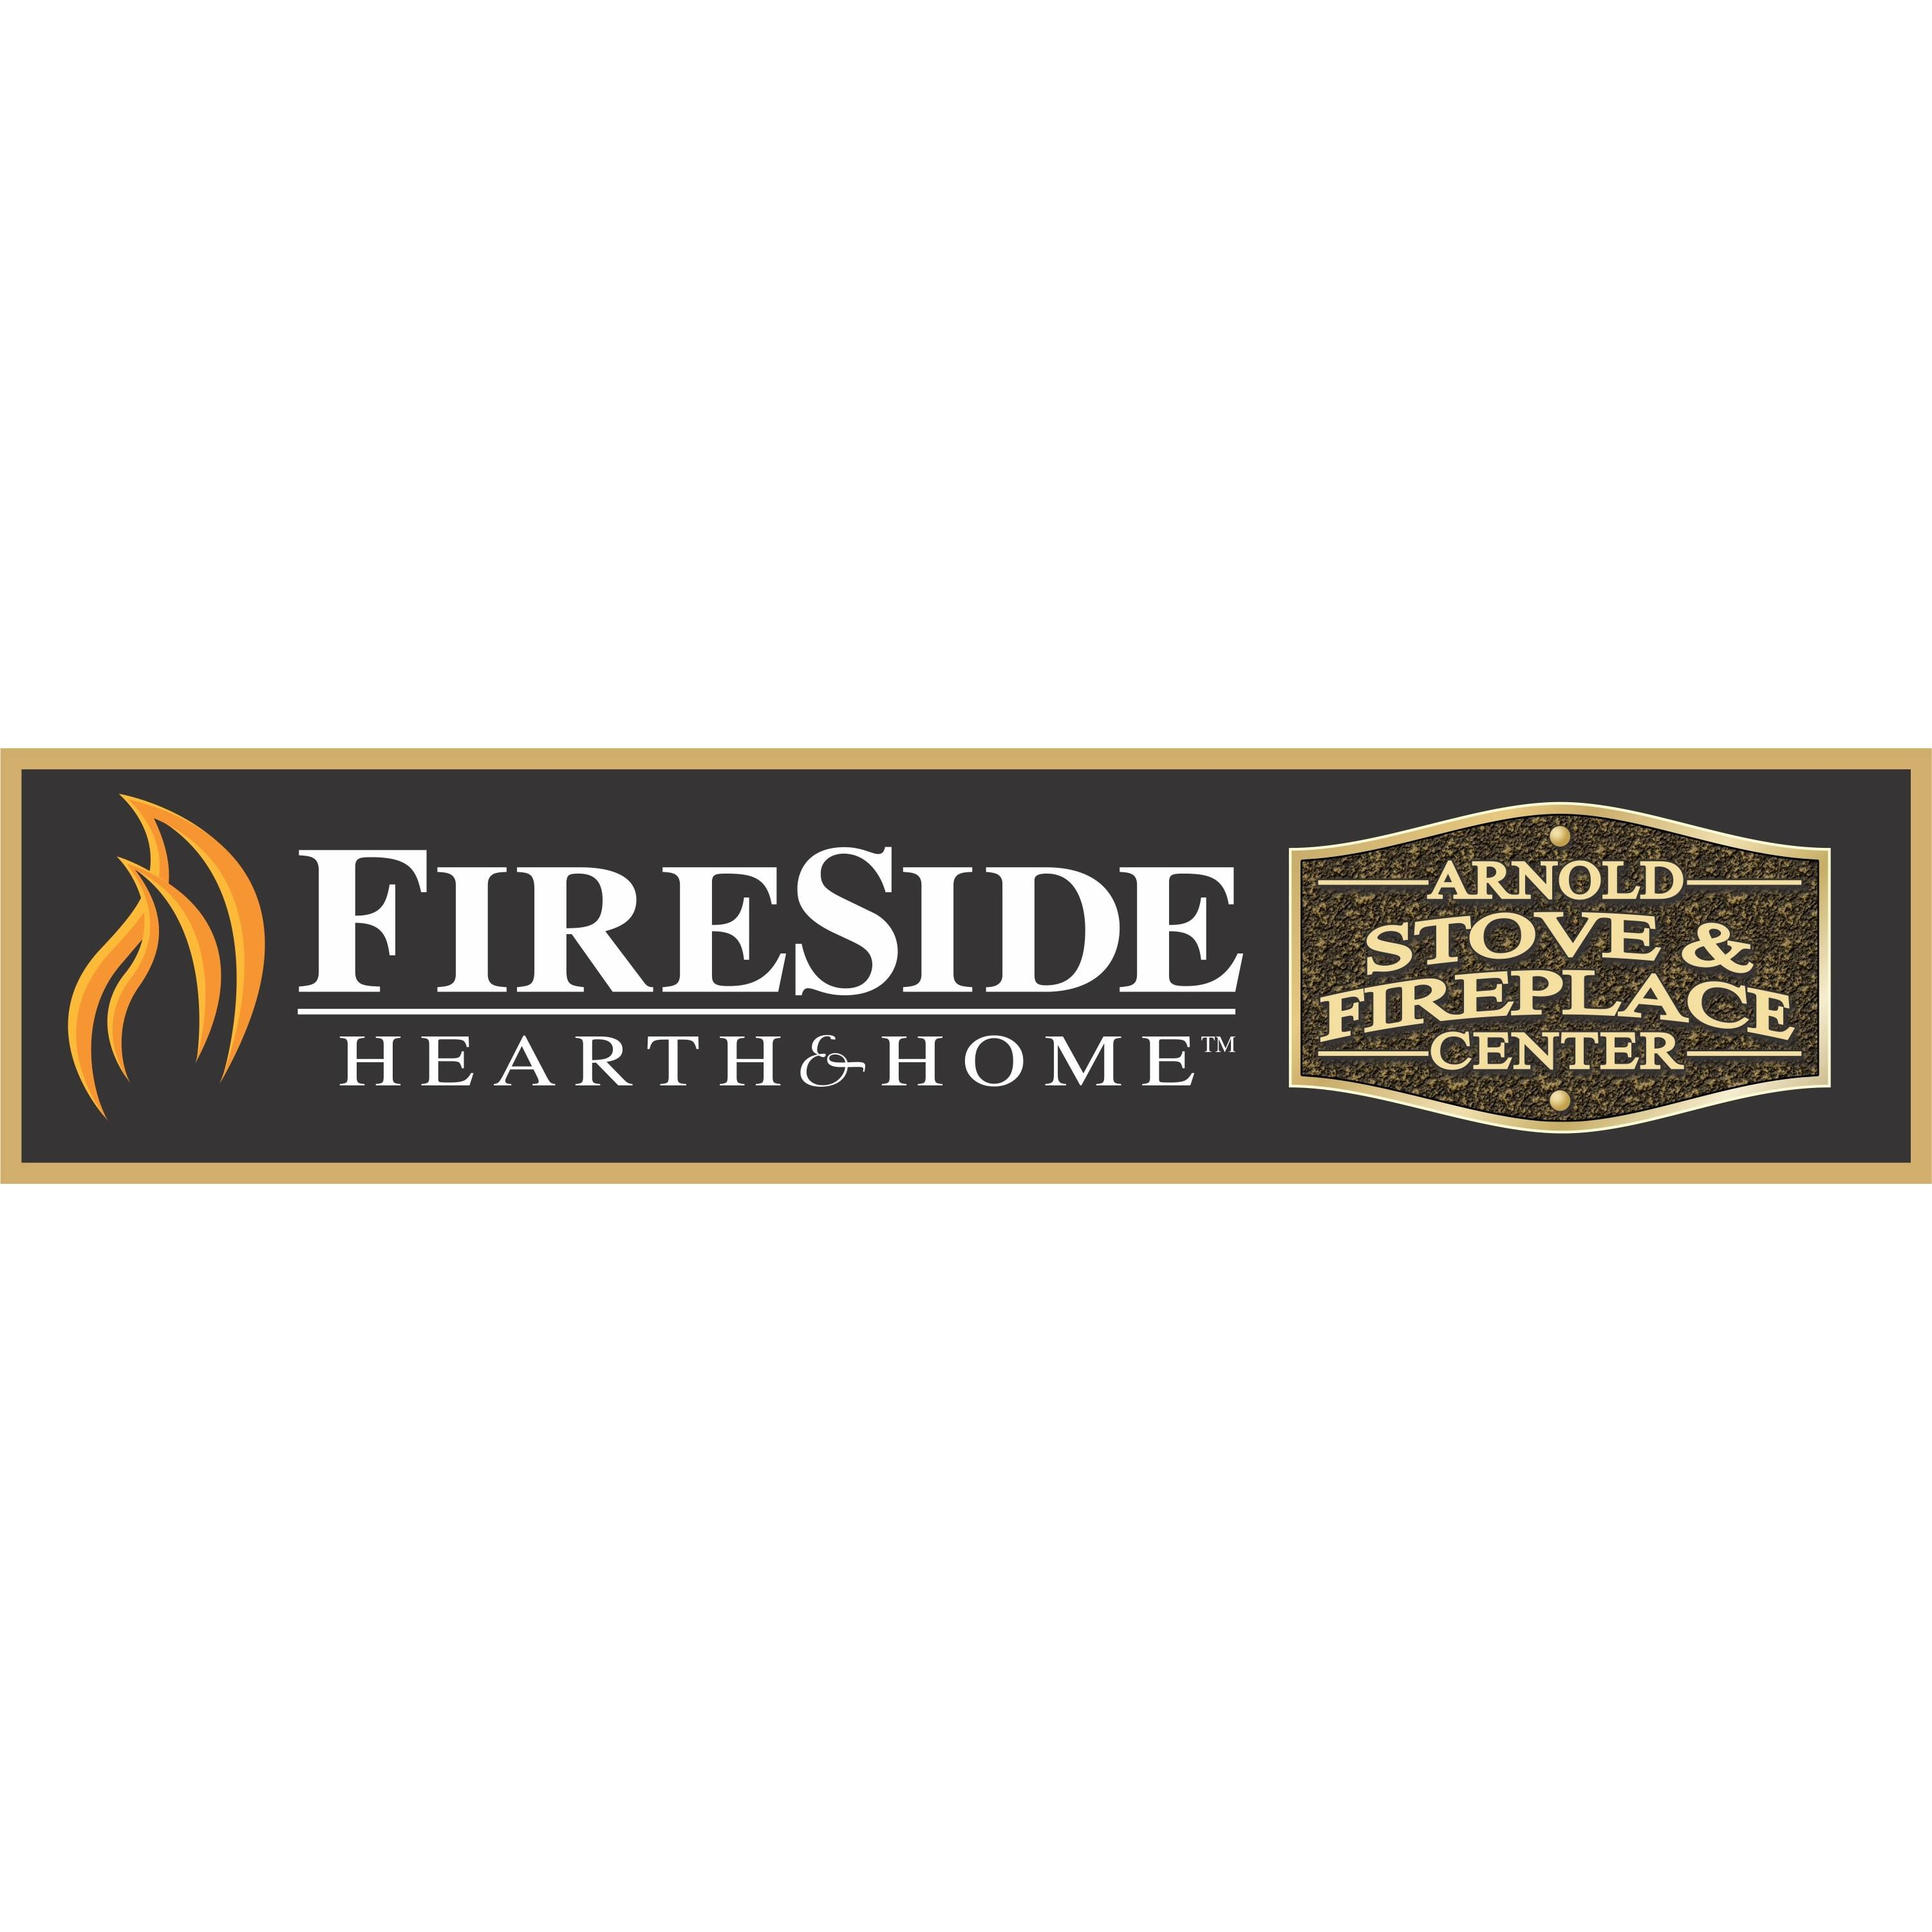 Fireside - Arnold Stove & Fireplace